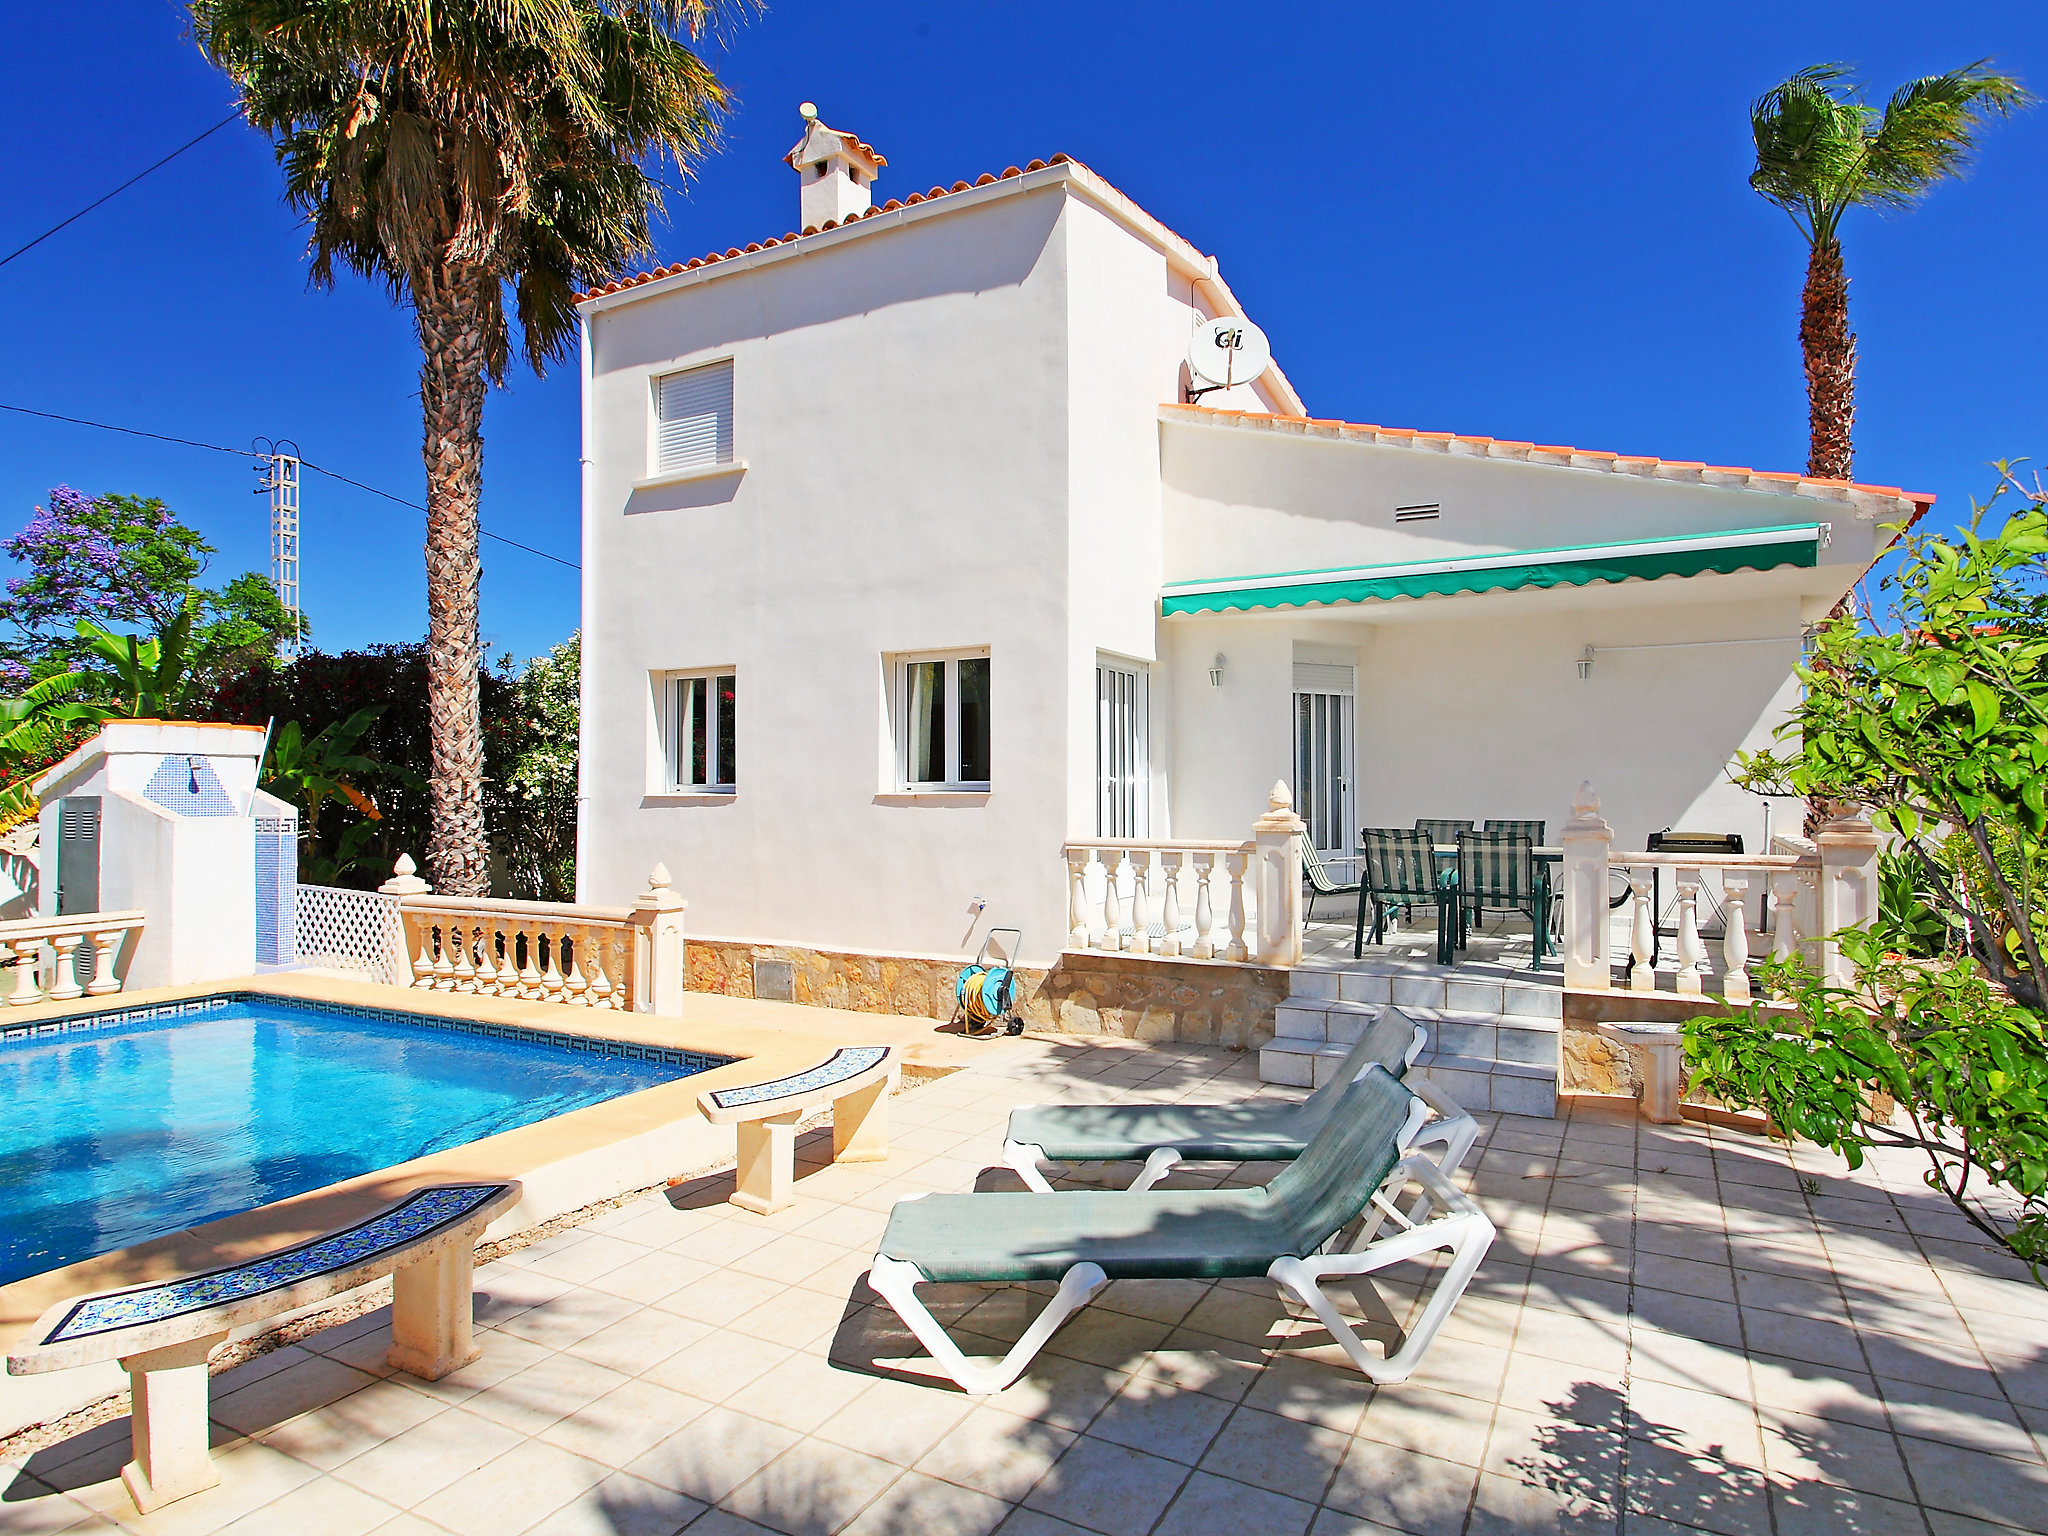 Villa Calcaria,Denia,Costa Blanca #1